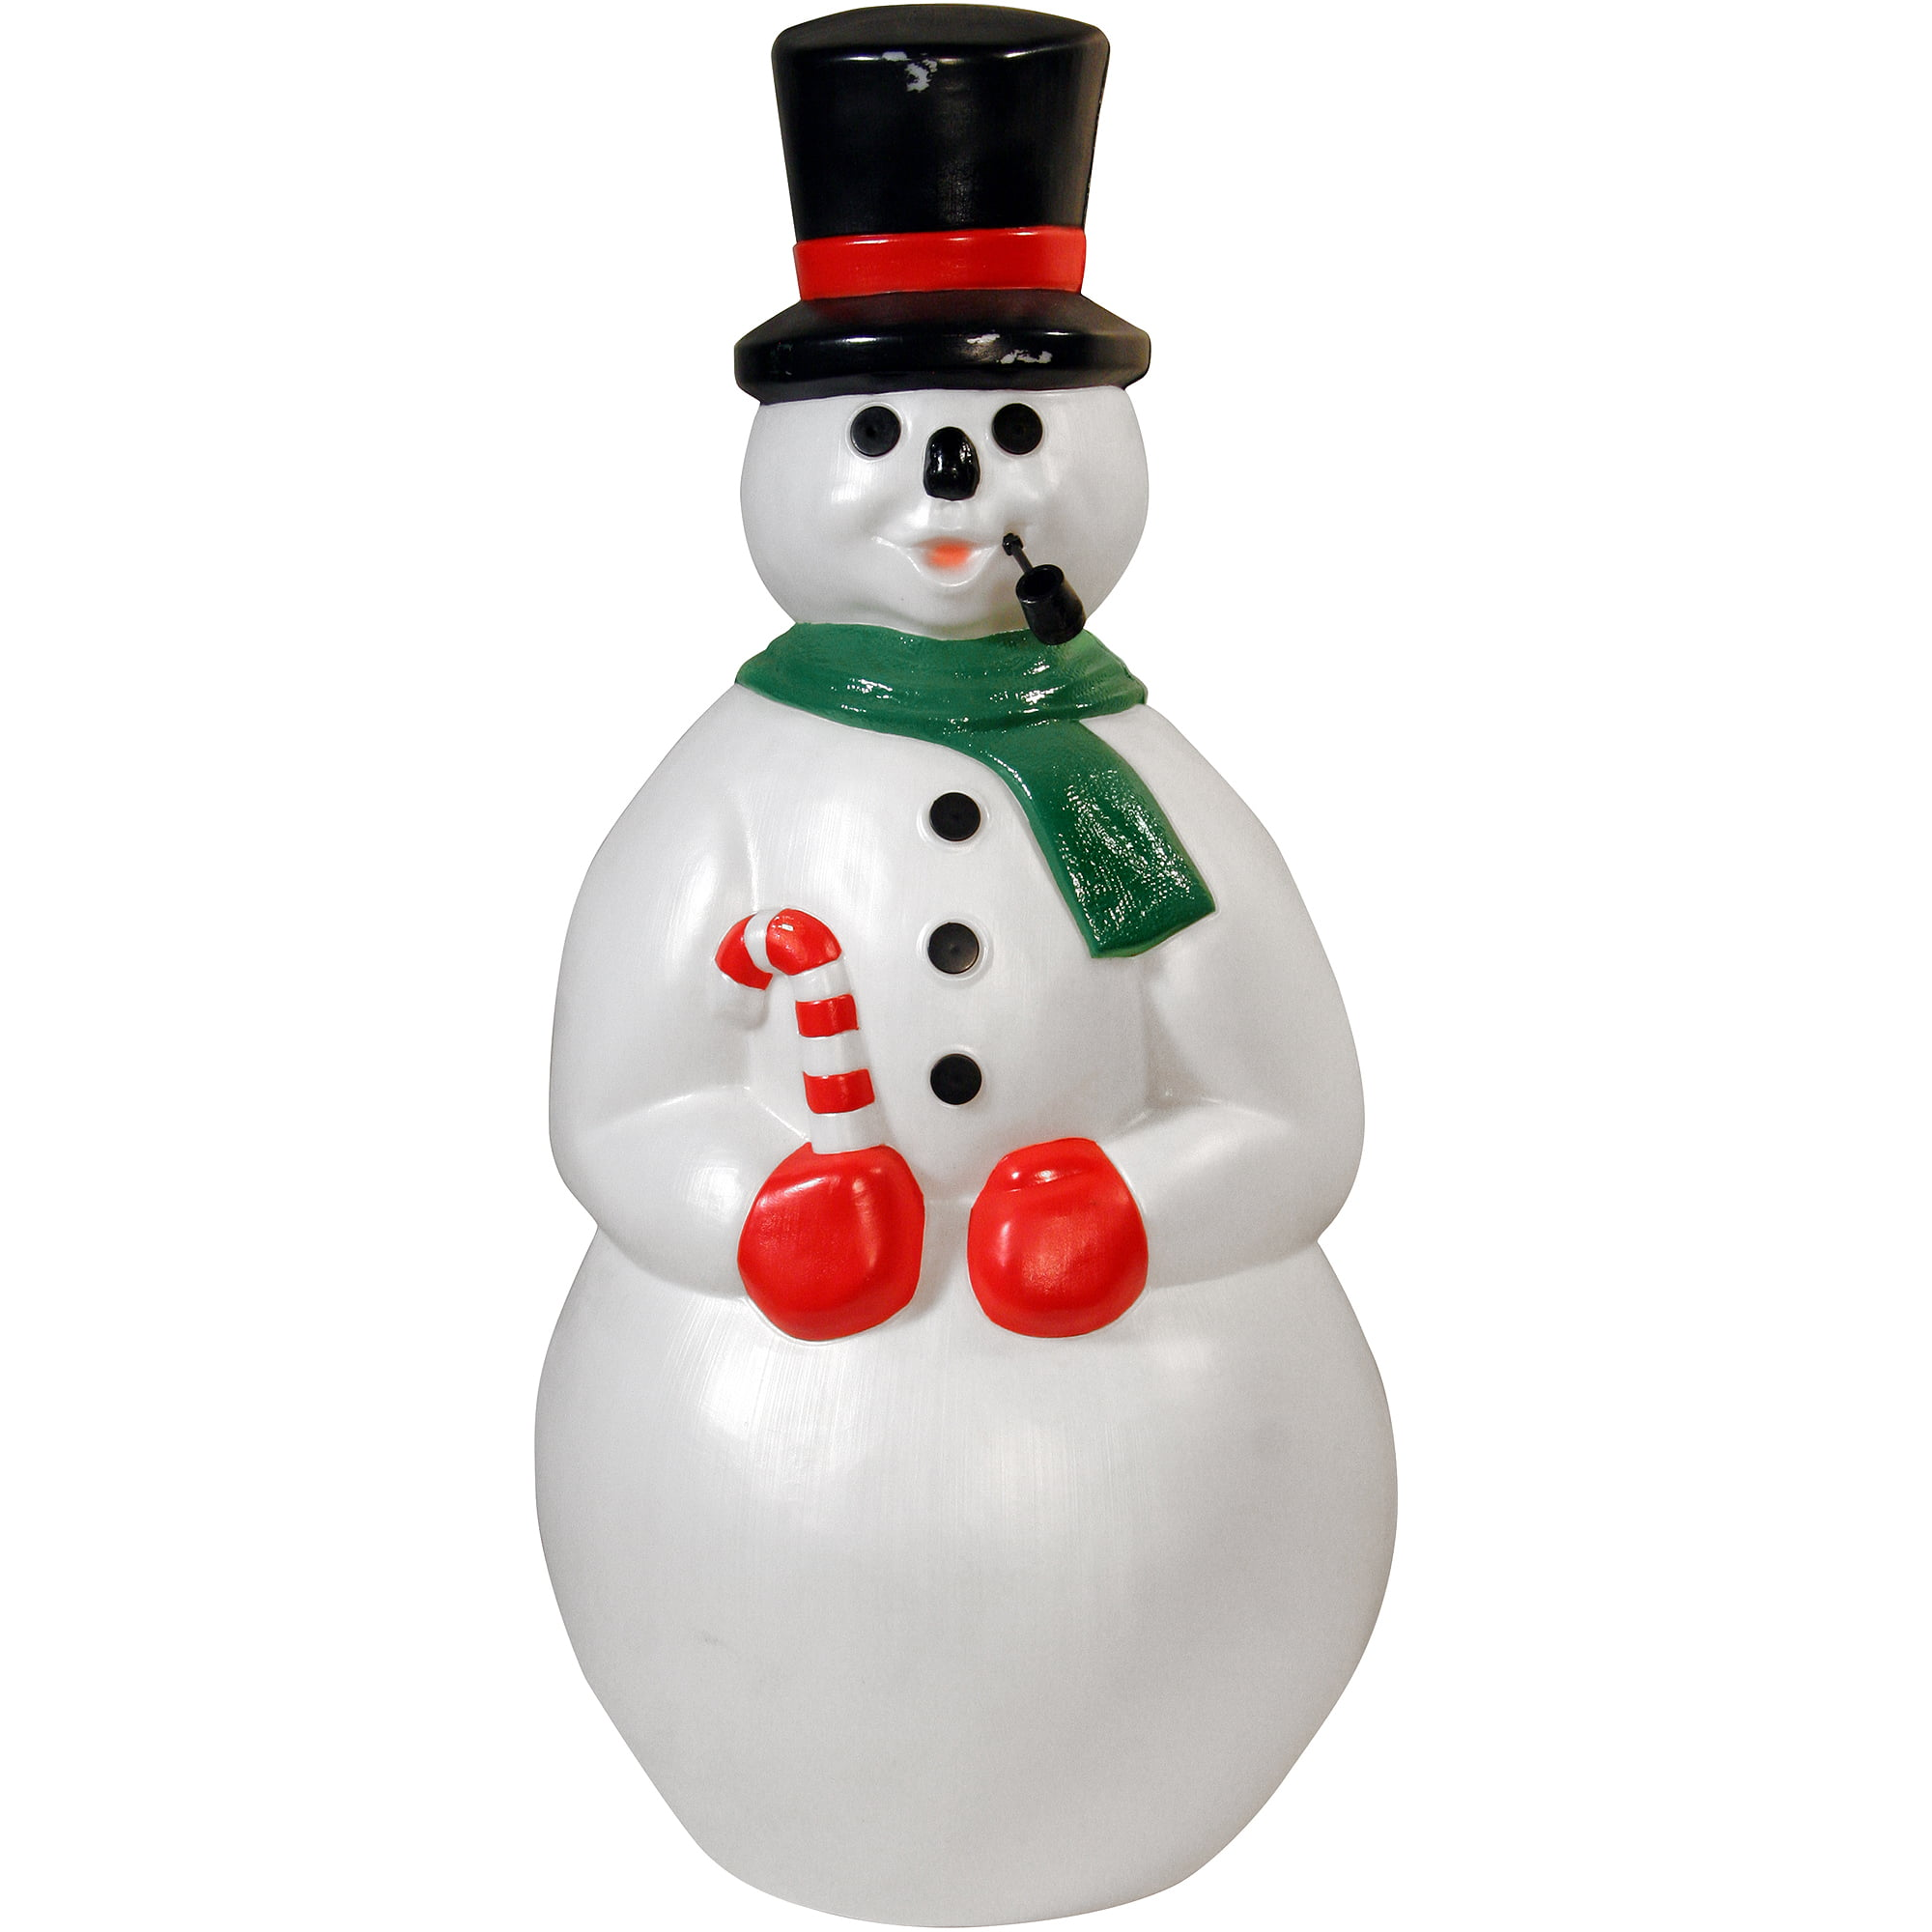 34 snowman with pipe blow mold walmartcom - Plastic Christmas Yard Decorations